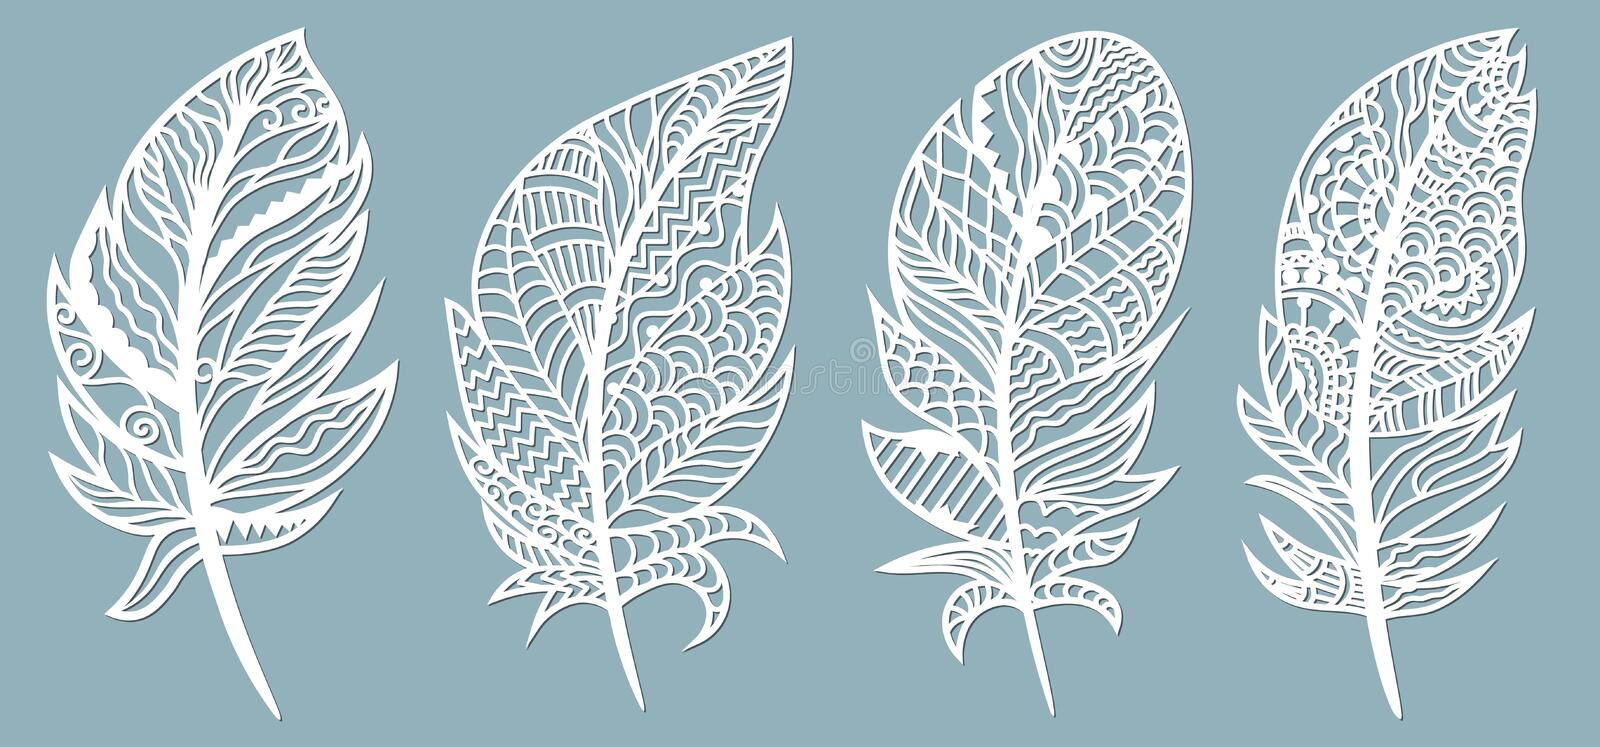 Feather. Laser cut. Template for laser cutting and Plotter. Vector illustration. Sticker. Pattern for the laser cut, serigraphy,. Plotter invitation design royalty free illustration